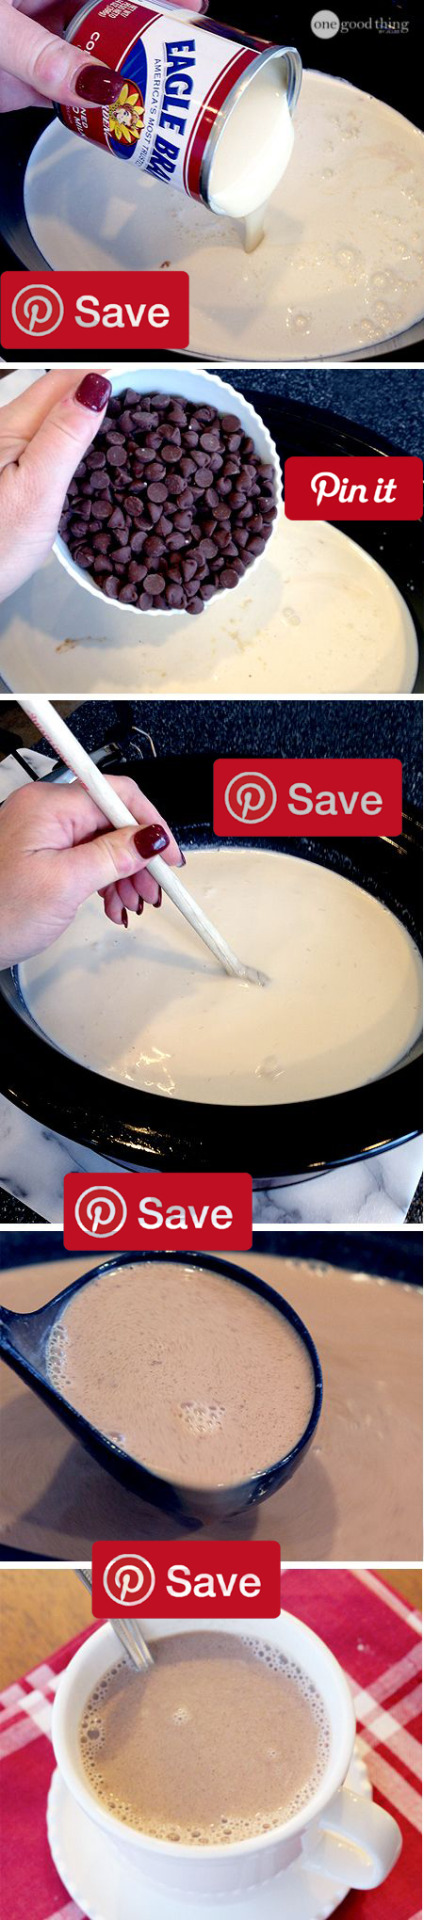 Best Ever Creamy Crockpot Cocoa 2 hrs to make IngredientsVegetarian Gluten freeBaking & Spices2 cups easys Chocolate chips1  tsp VanillaDairy1 14 ounce can Condensed milk sweetened1  cups Heavy whipping cream6 cups Milk